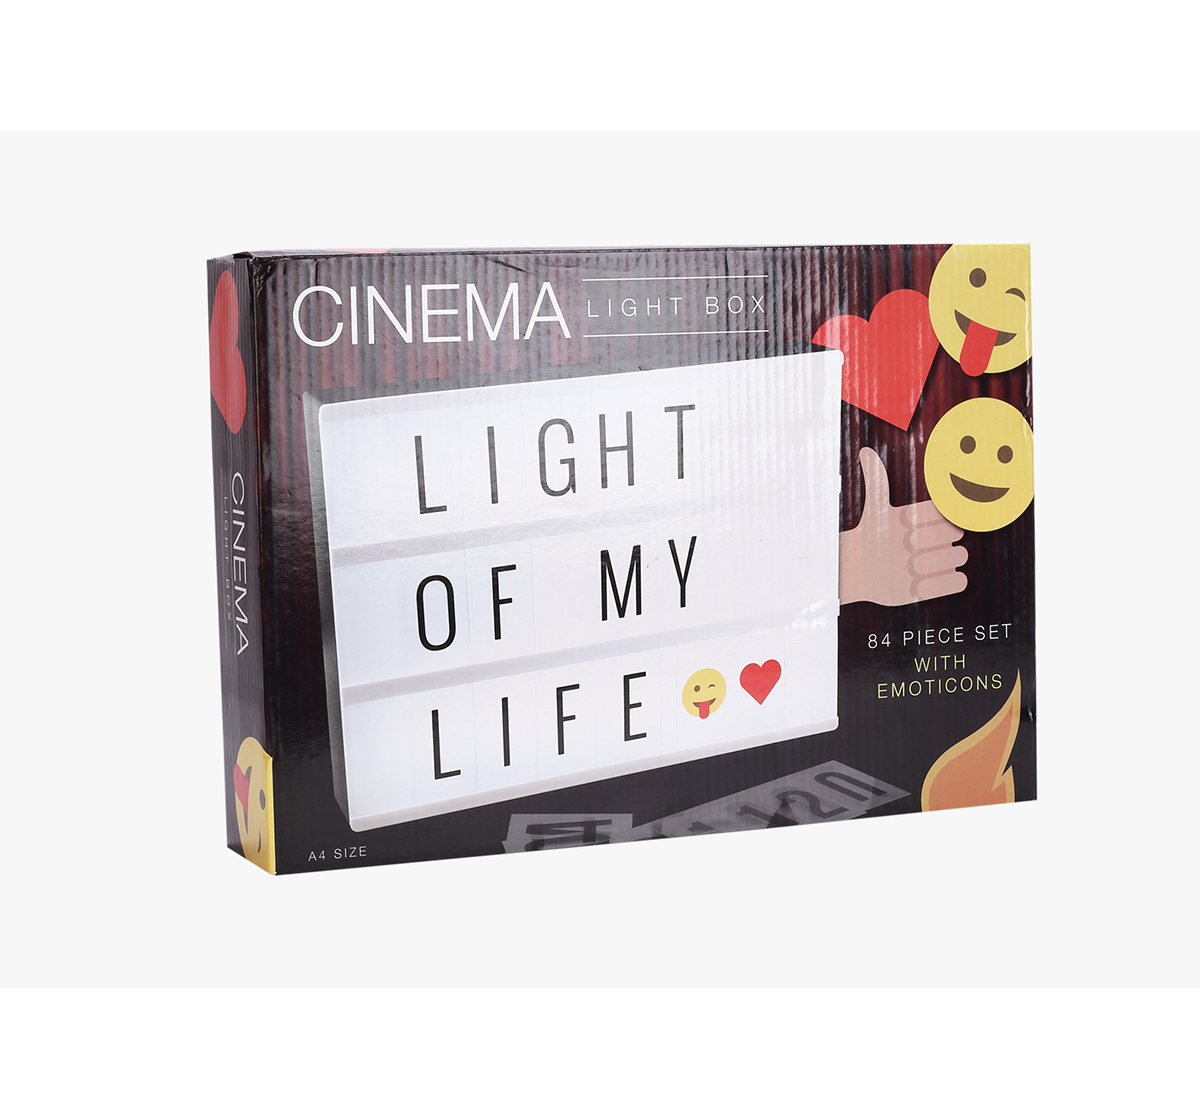 Red 5 |  Red5 Cinema Light Box -Electronics Accessories for Kids age 3Y+ (White)